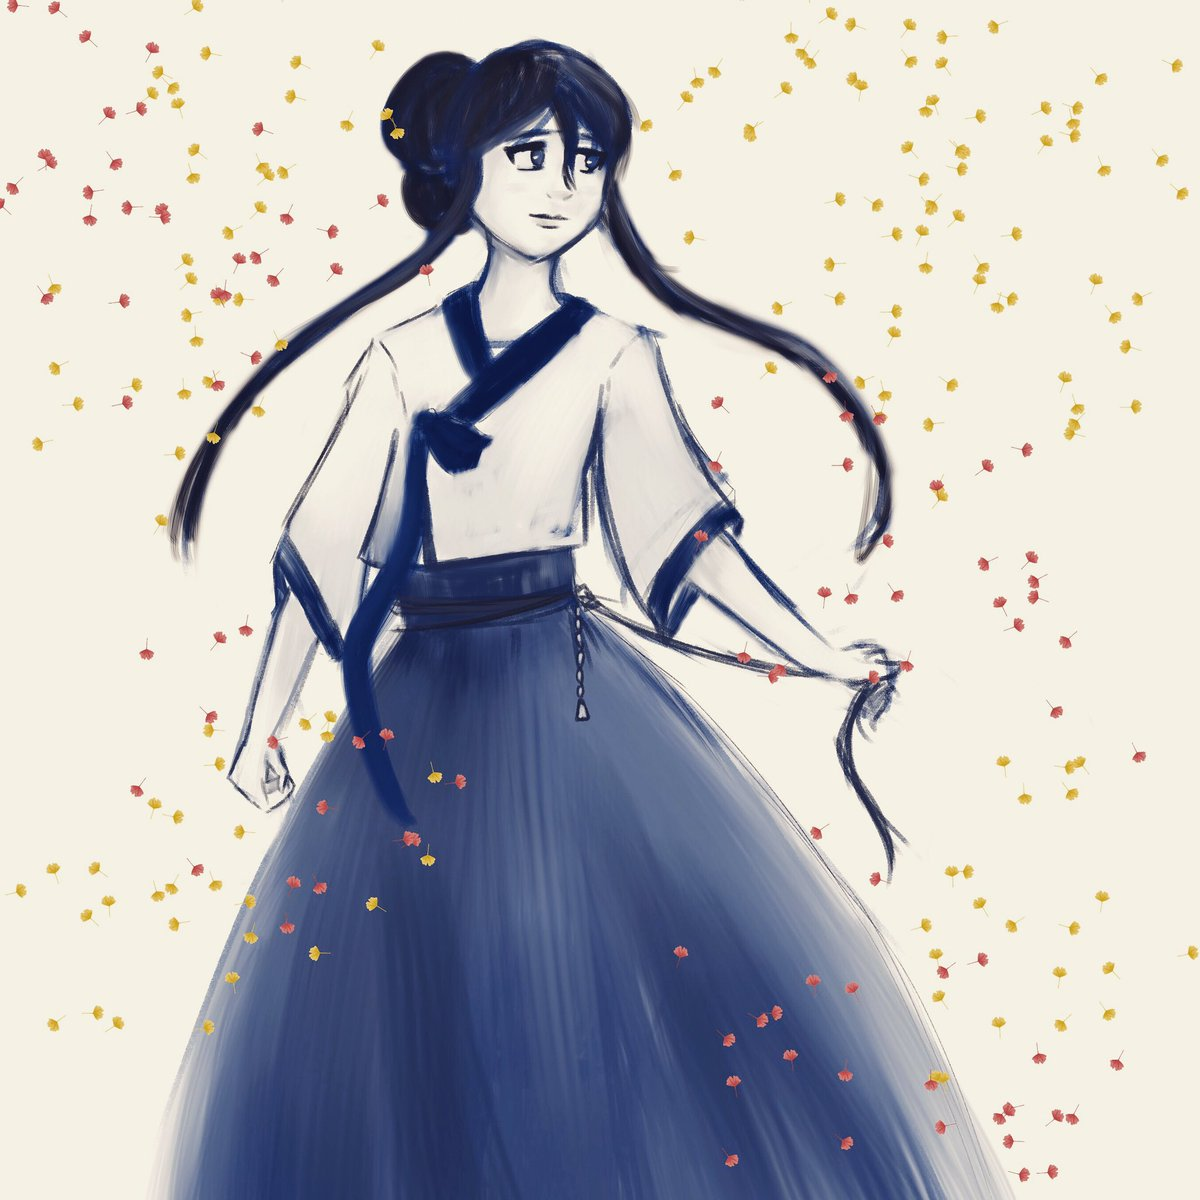 Spookish Ally Distancing On Twitter Hi I Know I Ve Been Quiet But I Wanted To Say Happy Chusuk To Everyone Korean Thanksgiving Drew One Of My Ocs In Hanbok Because Why Not Right